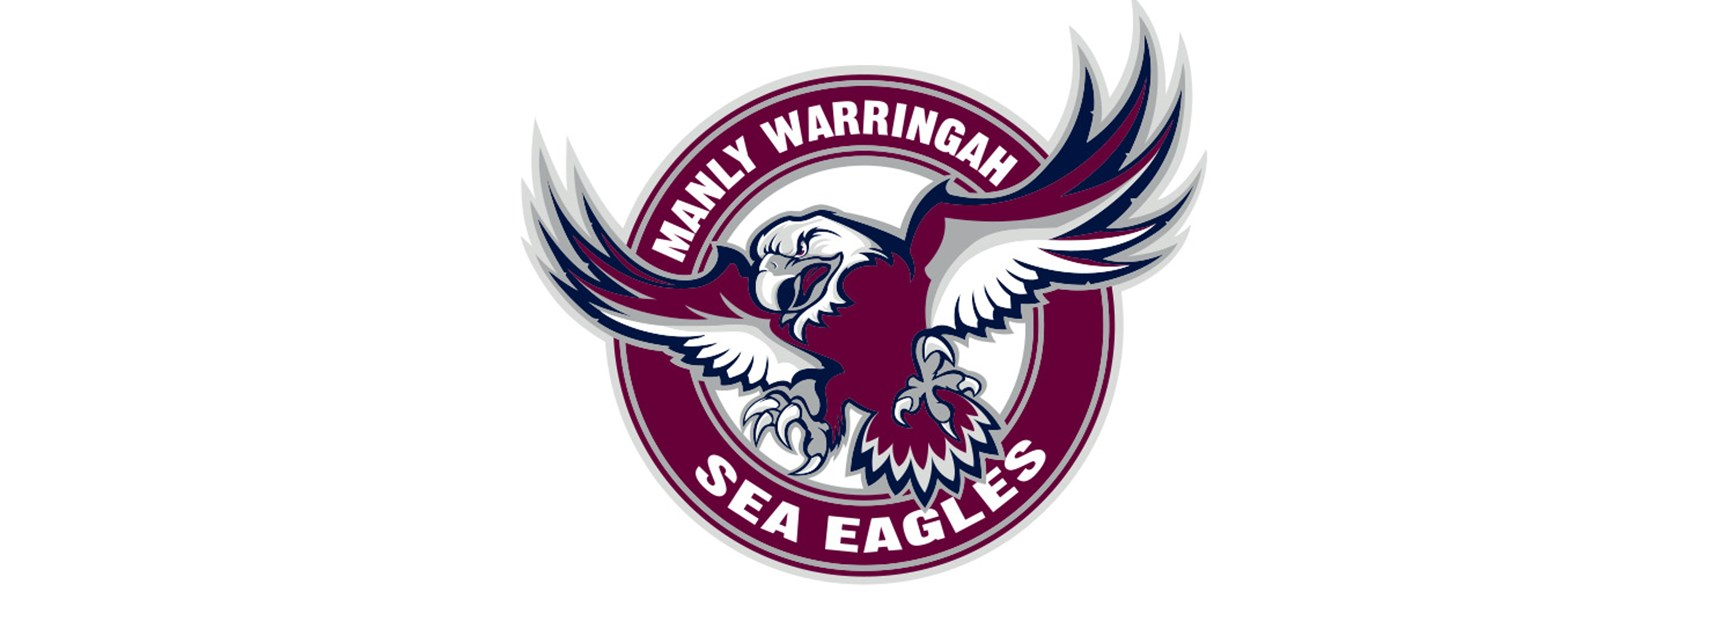 Sea Eagles appoint new General Manager of Football – John Bonasera